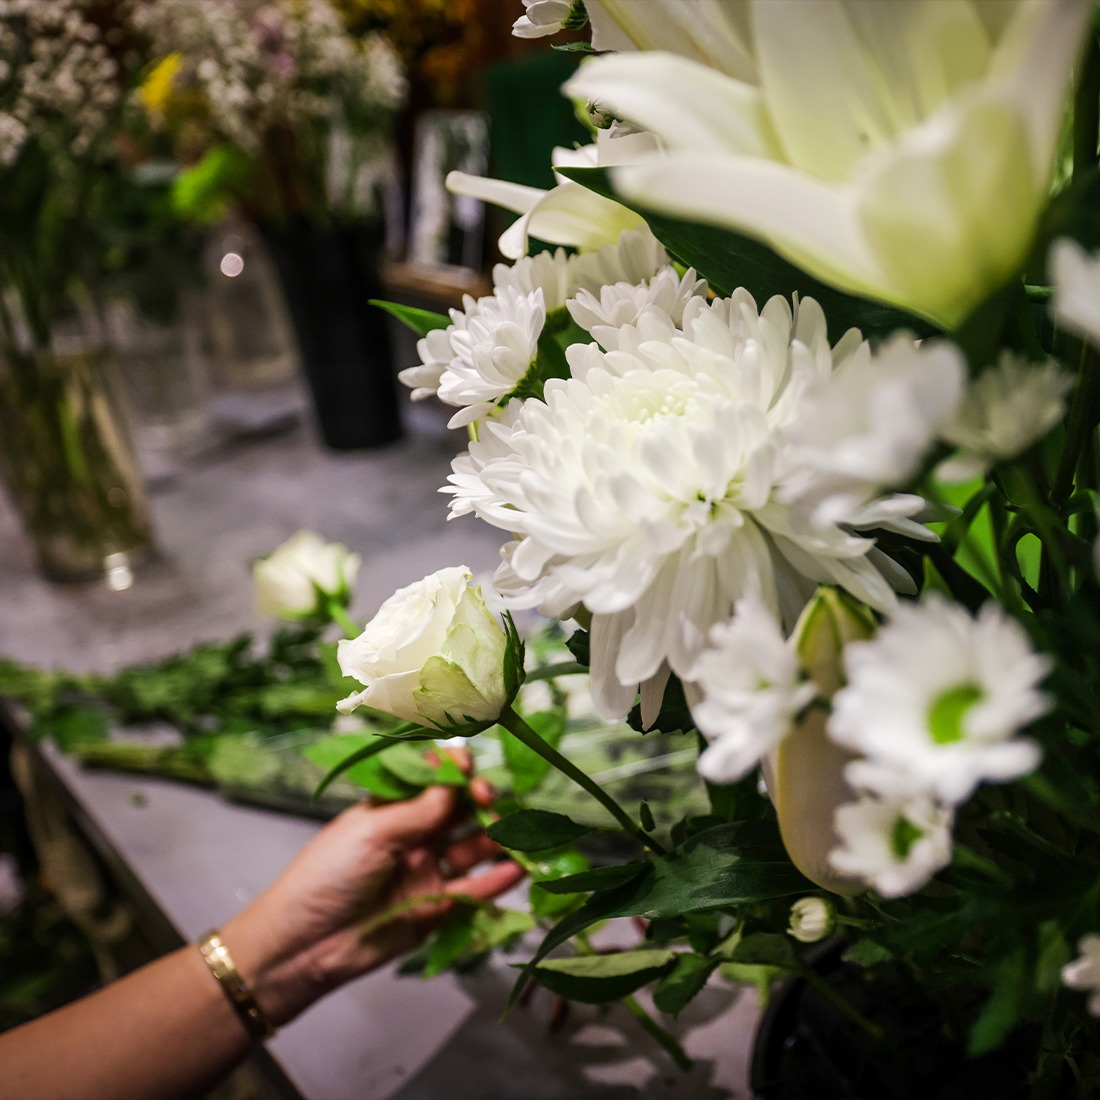 A woman's hand arranging flowers